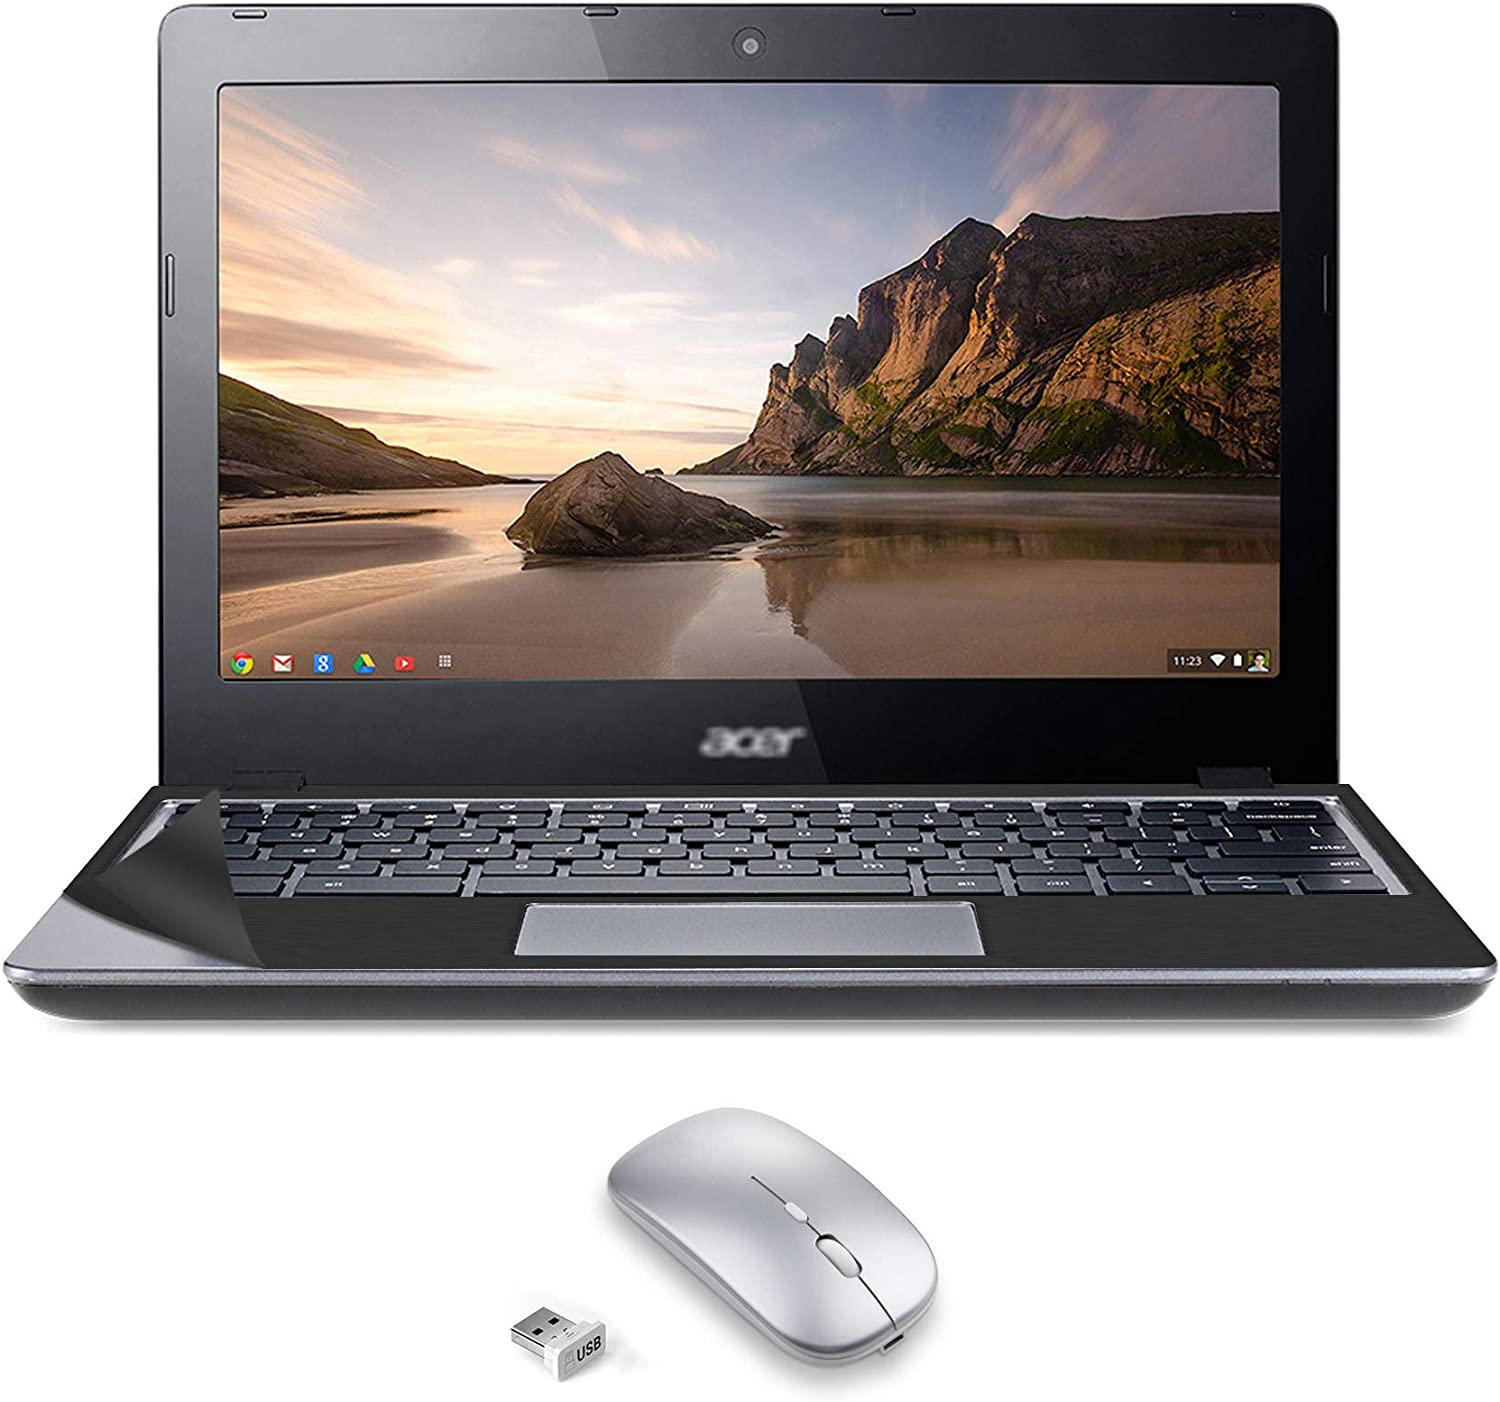 Used Chromebook Laptop C720 11.6 Inches Computer Intel Celeron 2955U Processor 2GB RAM 32GB eMMC SSD (with USB Mouse- Touch pad Can't Work) with Computer Skin in A Cover PC Notebook Chrome OS